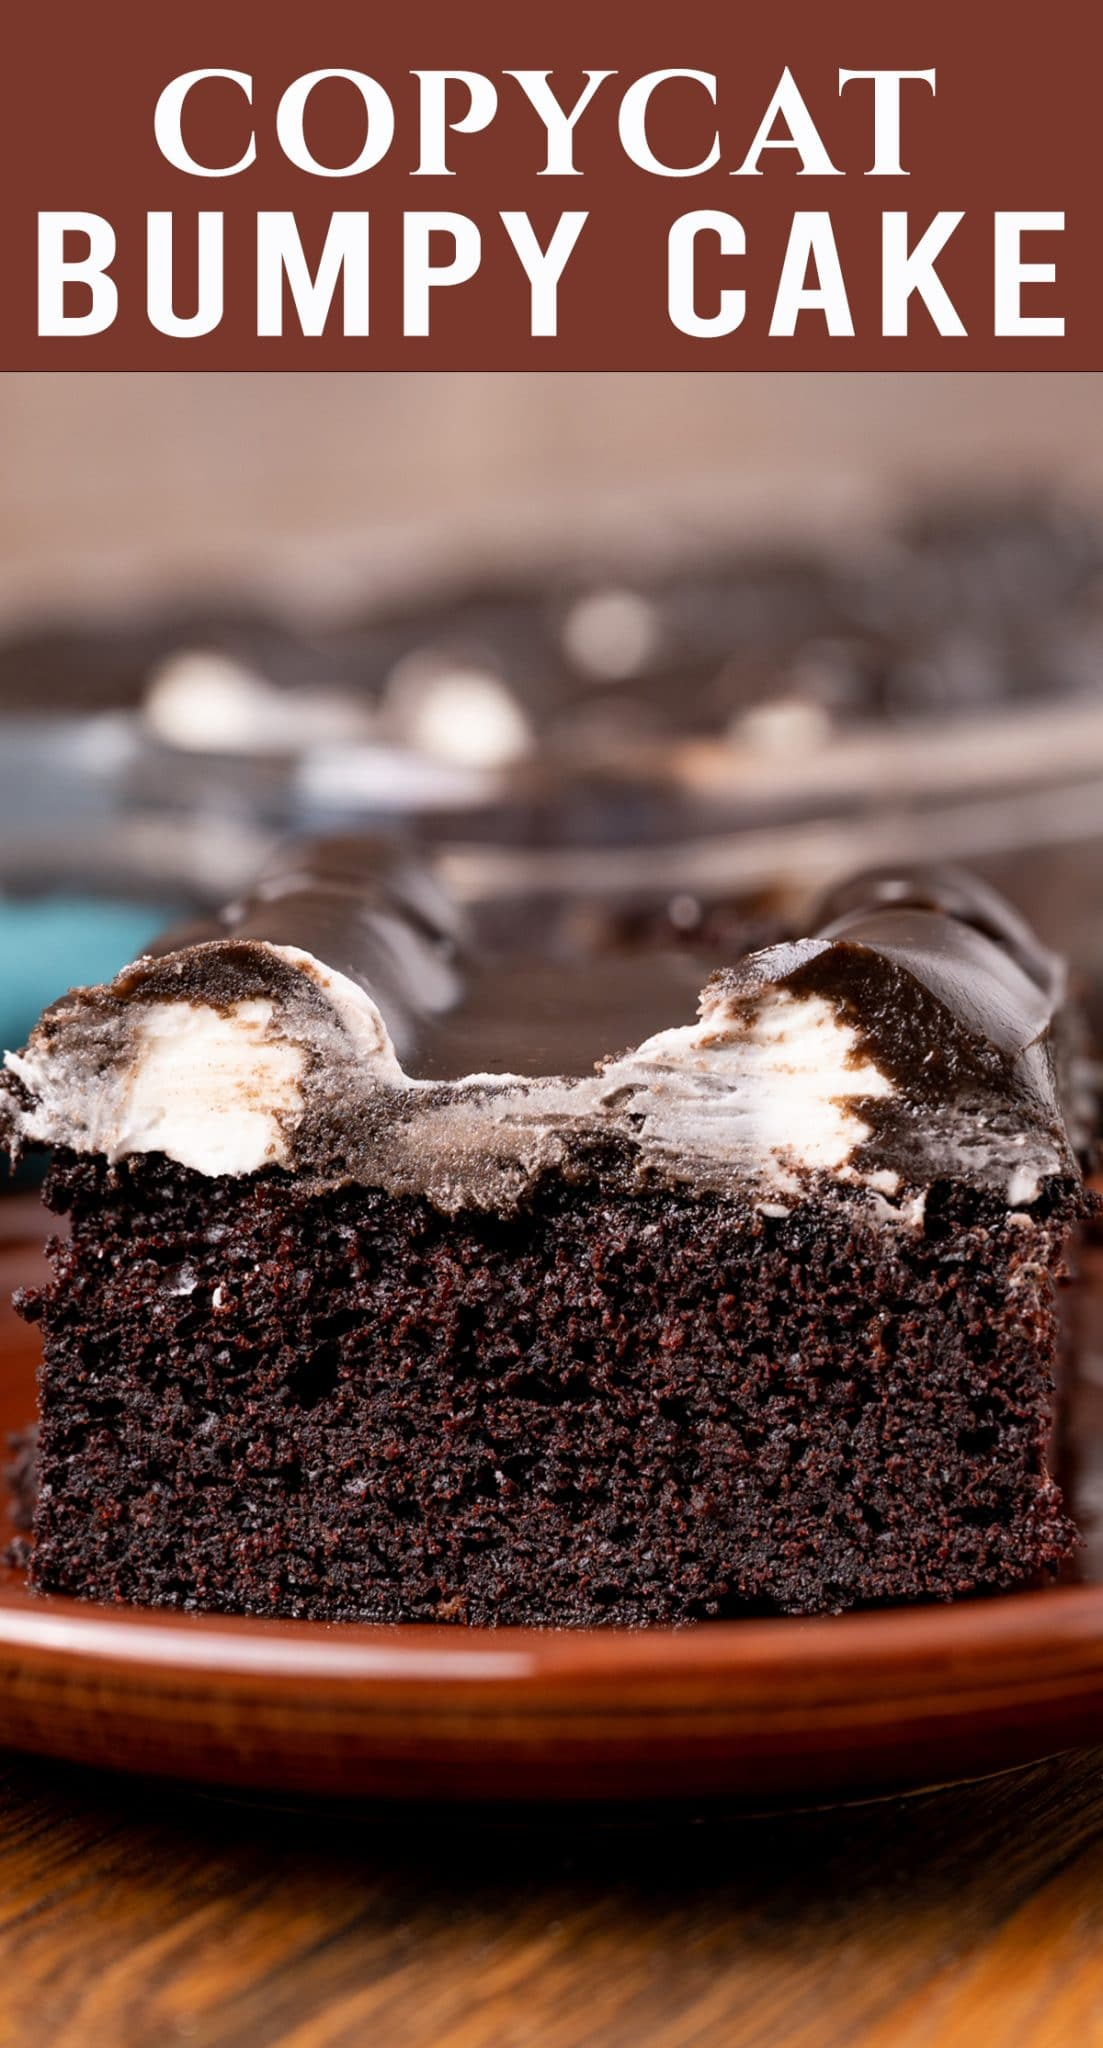 The iconic Michigan dessert: The Bumpy Cake! This fudgy, moist chocolate, buttercream and chocolate fudge frosting is a delicious copycat of the original. via @thebestcakerecipes